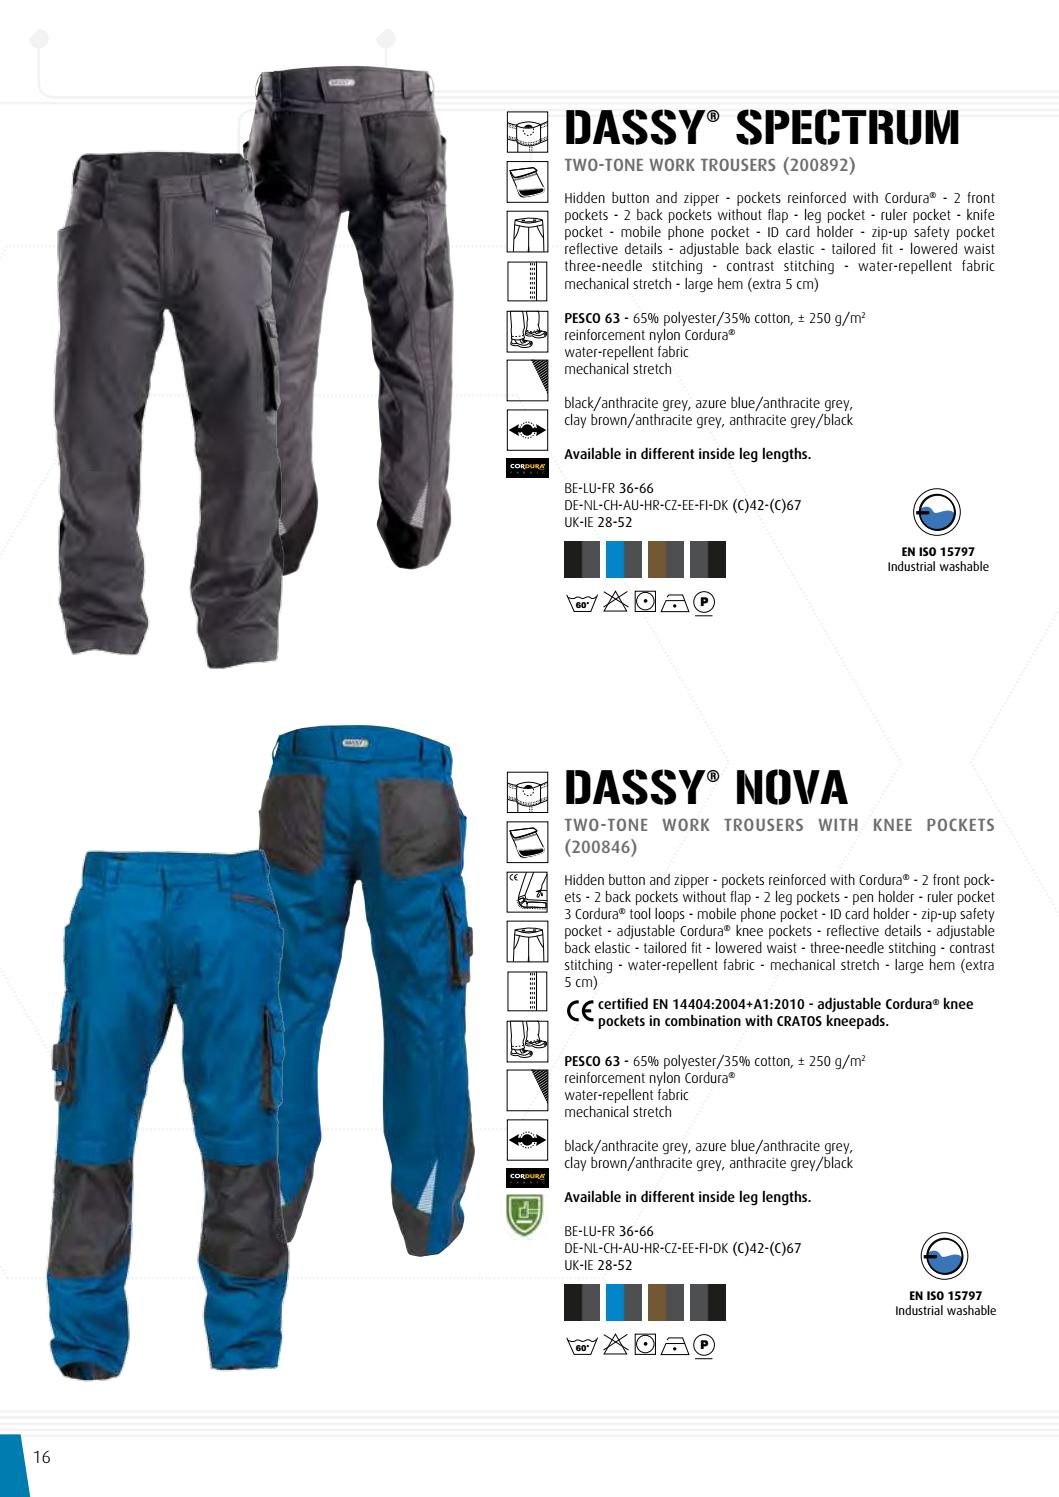 DASSY Work Trousers Nova 200846 Clay Brown Anthracite Waistband Trousers Stretch